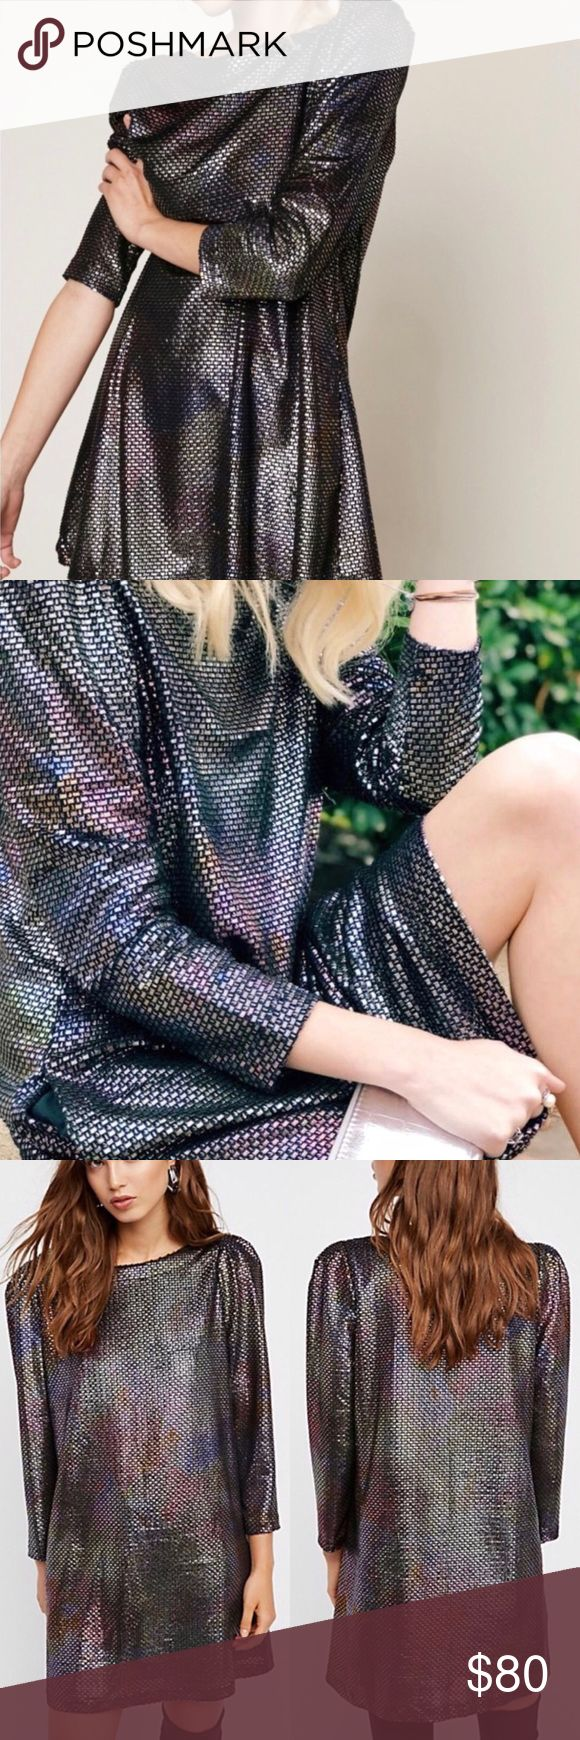 """NWT Free People Diamonds Are Forever Dress Silver NWT. Size Medium. Silver color with a """"mermaid"""" rainbow iridescent look. Long sleeve metallic mini dress featuring structured shoulders and a swingy silhouette. Side pockets. Still being sold on the Free People website.   • Make me an offer! • Free People Dresses Long Sleeve"""